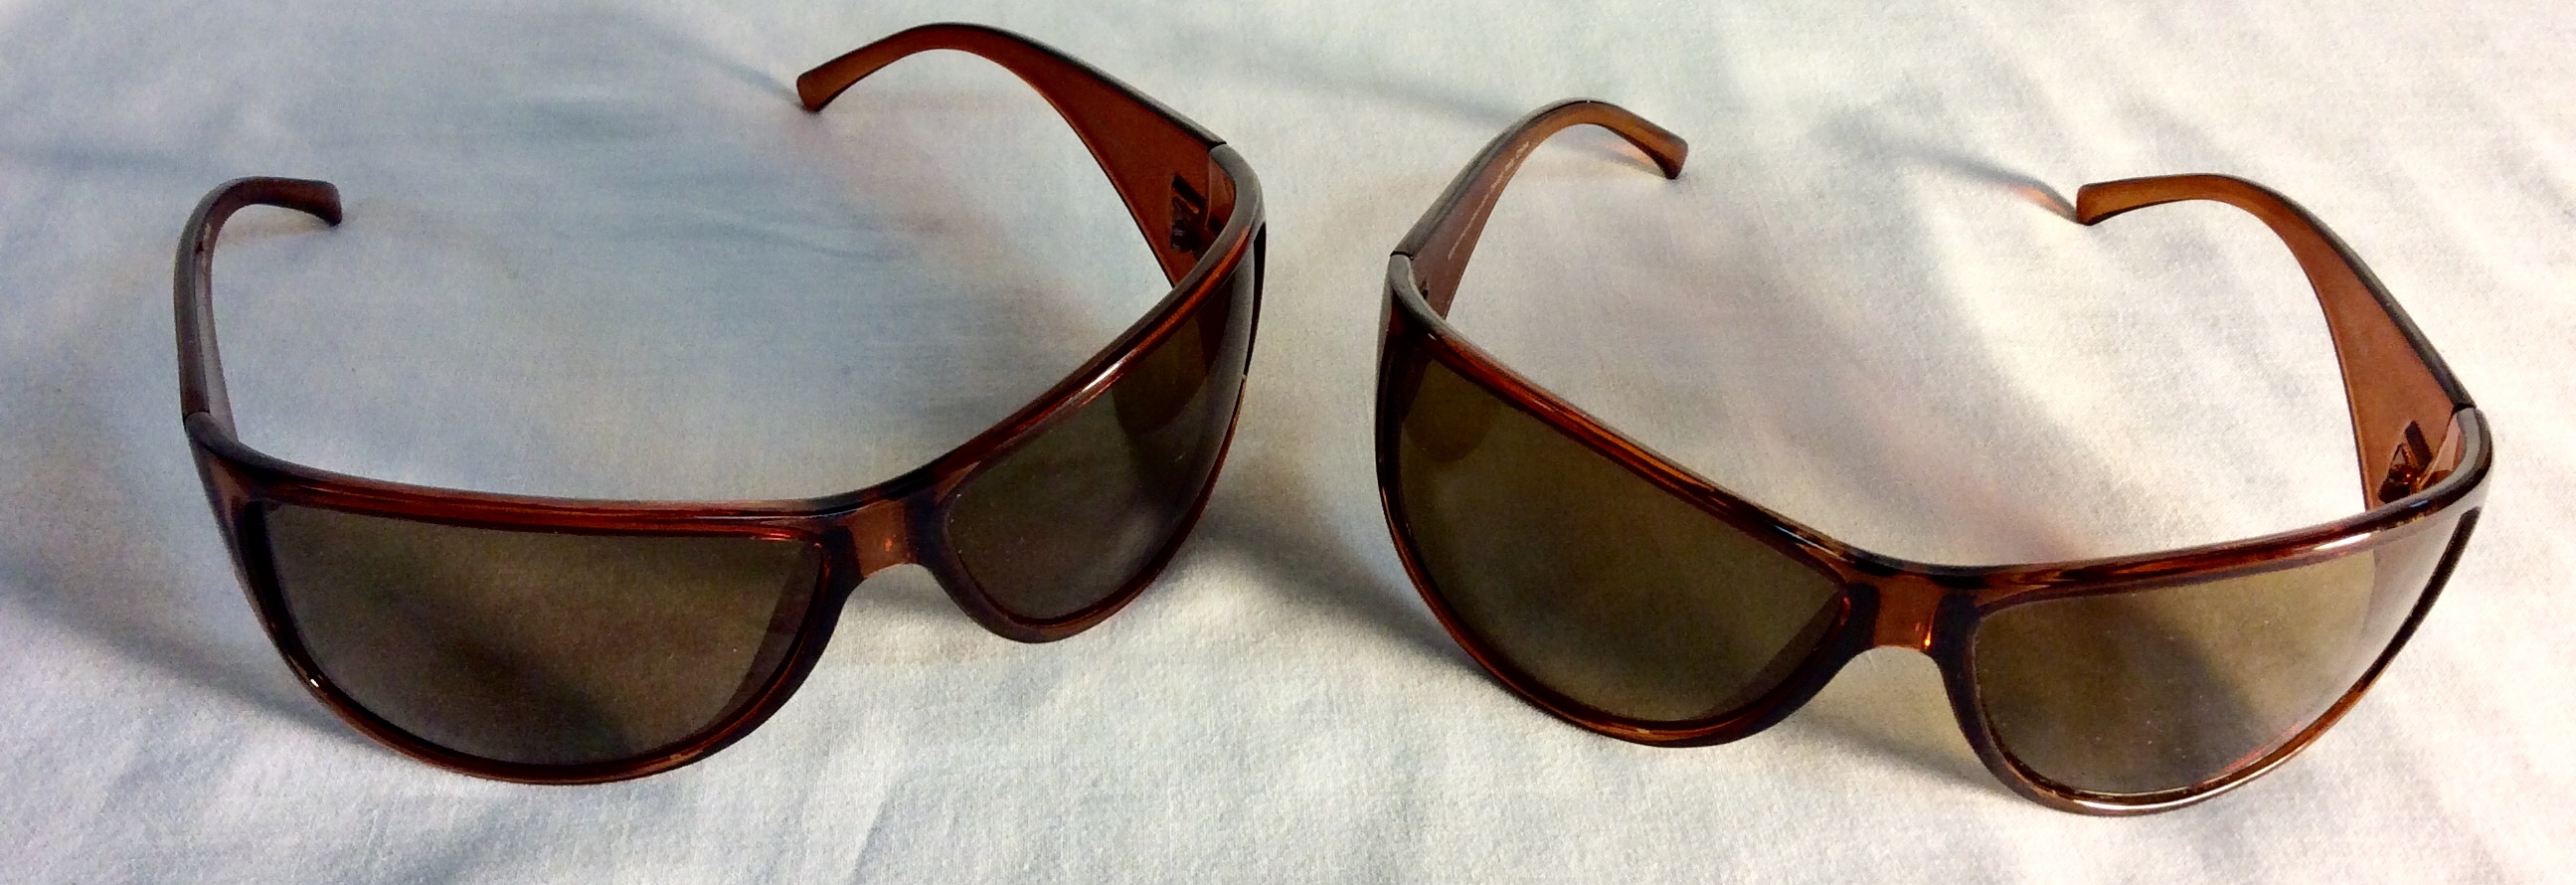 Light brown plastic sunglasses